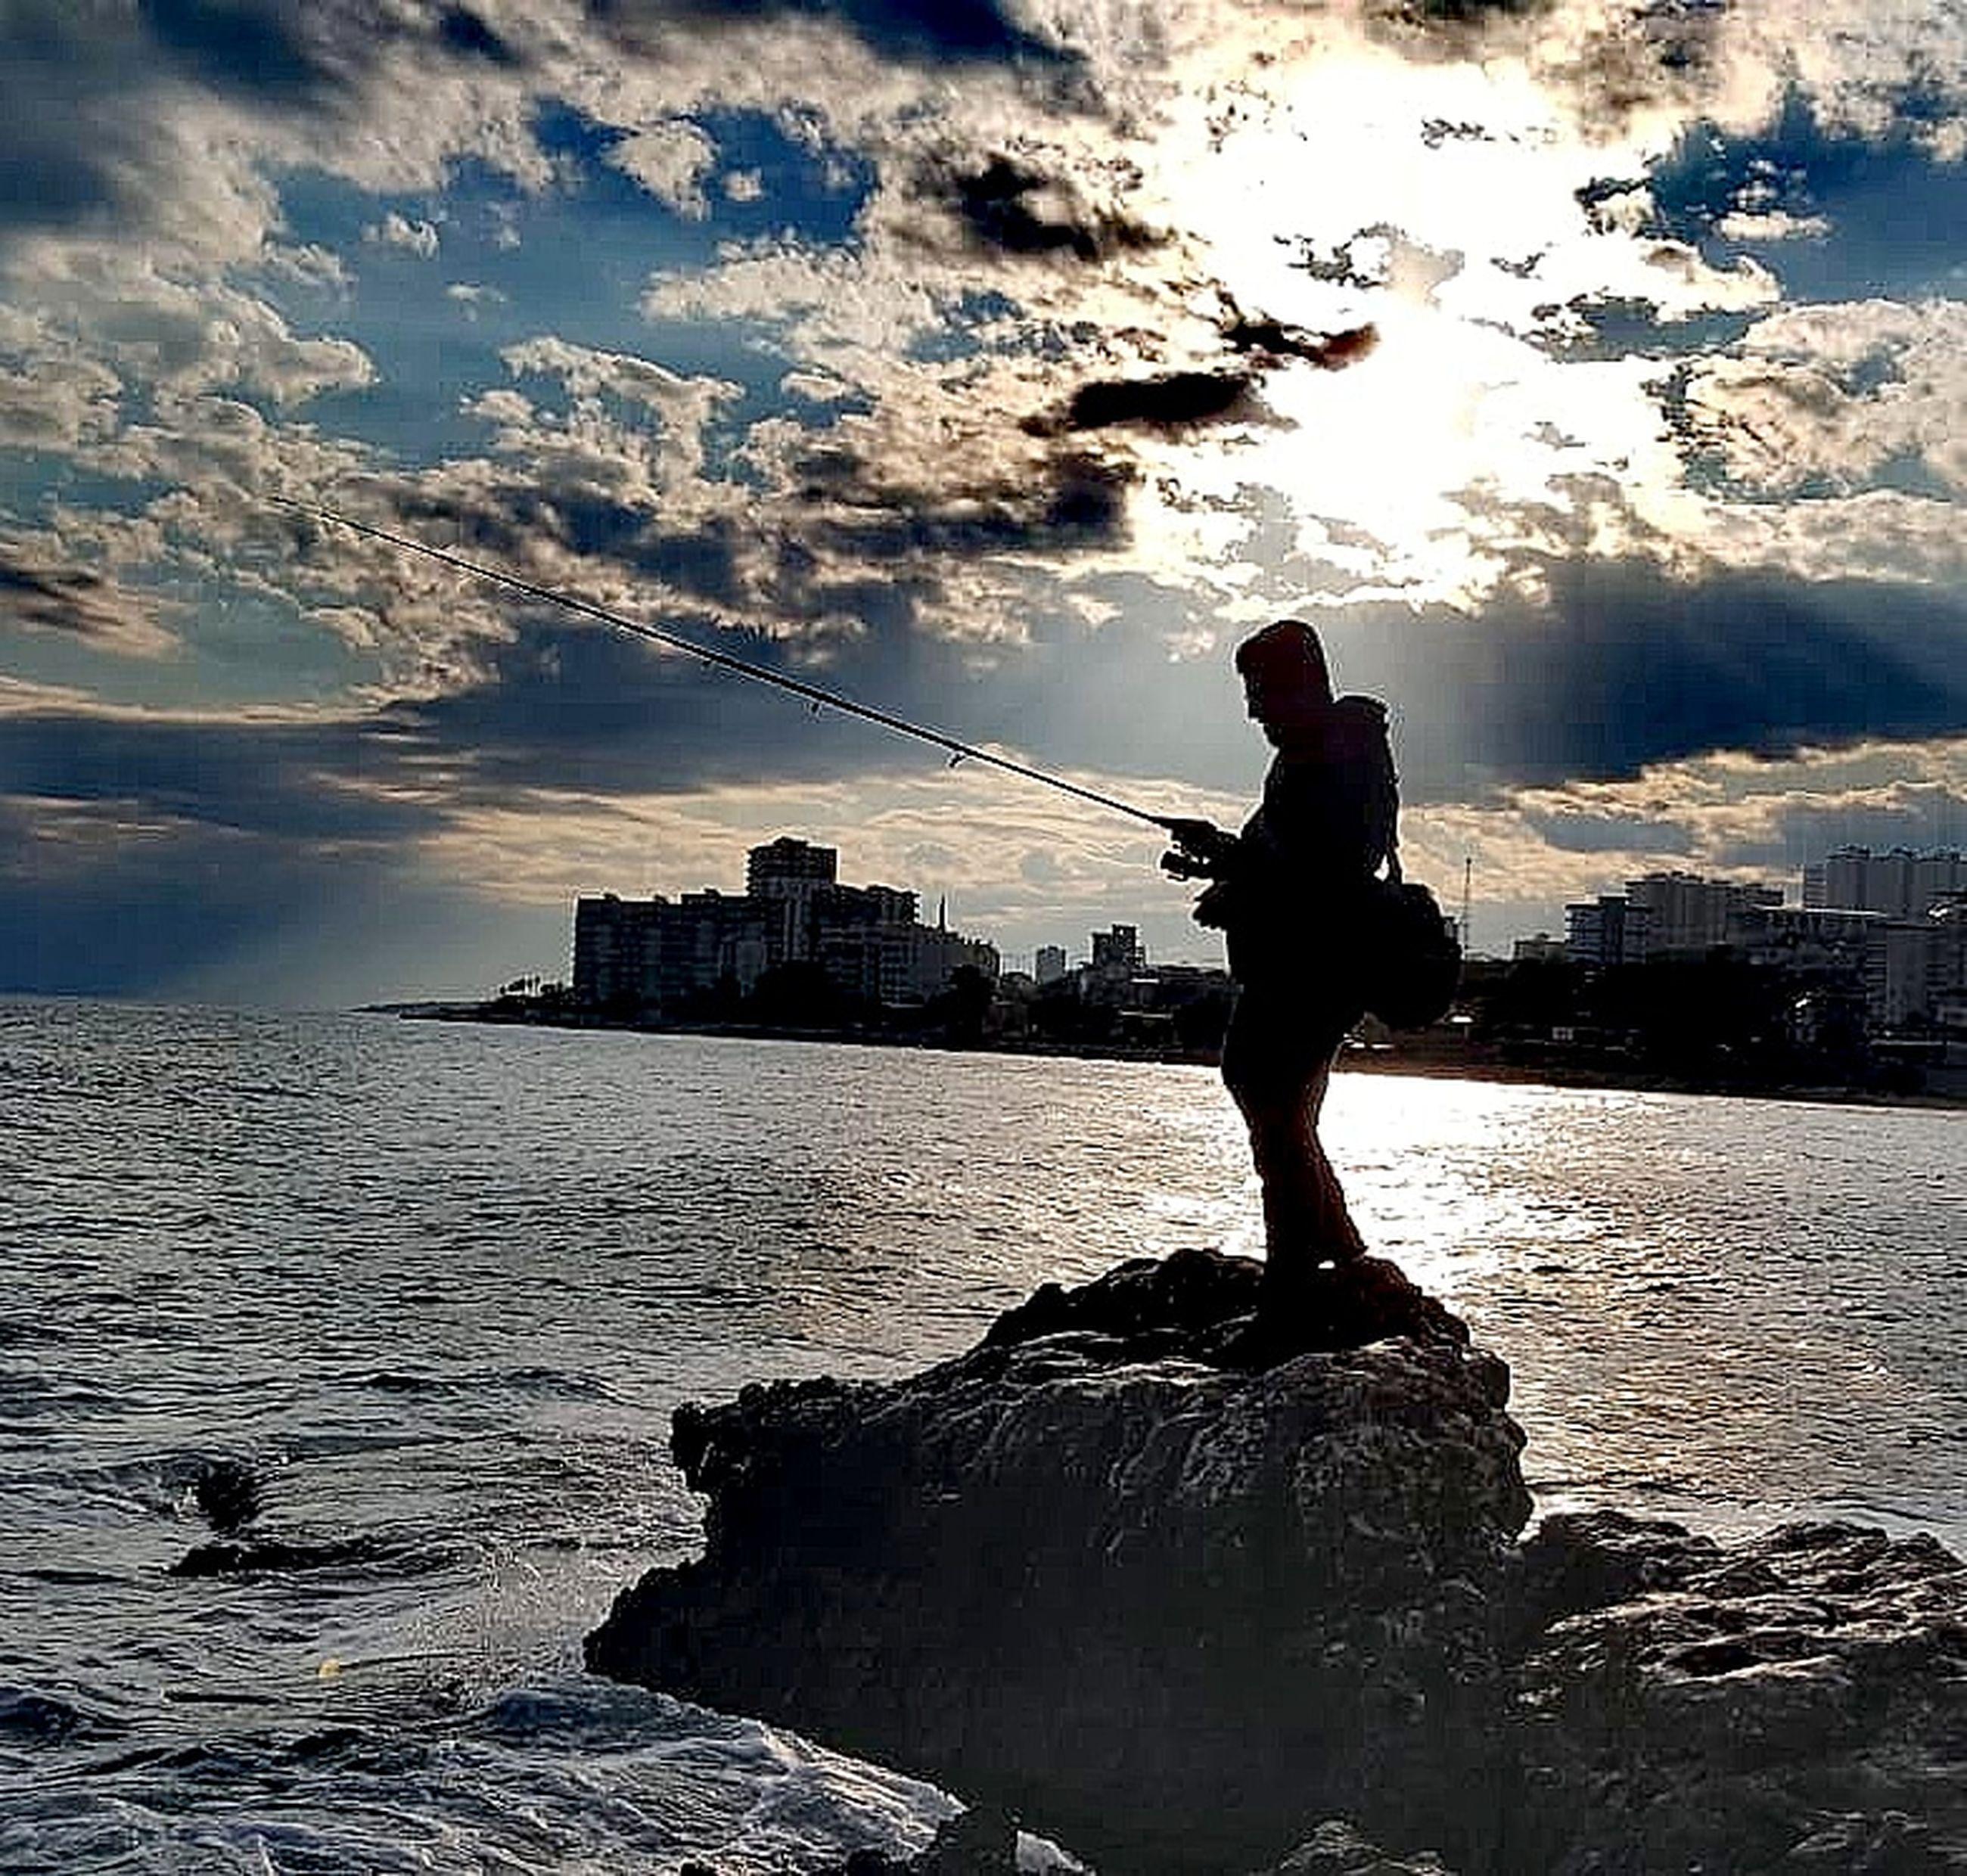 water, sky, one person, sea, standing, cloud - sky, built structure, architecture, real people, building exterior, rock, rock - object, nature, full length, lifestyles, solid, leisure activity, city, outdoors